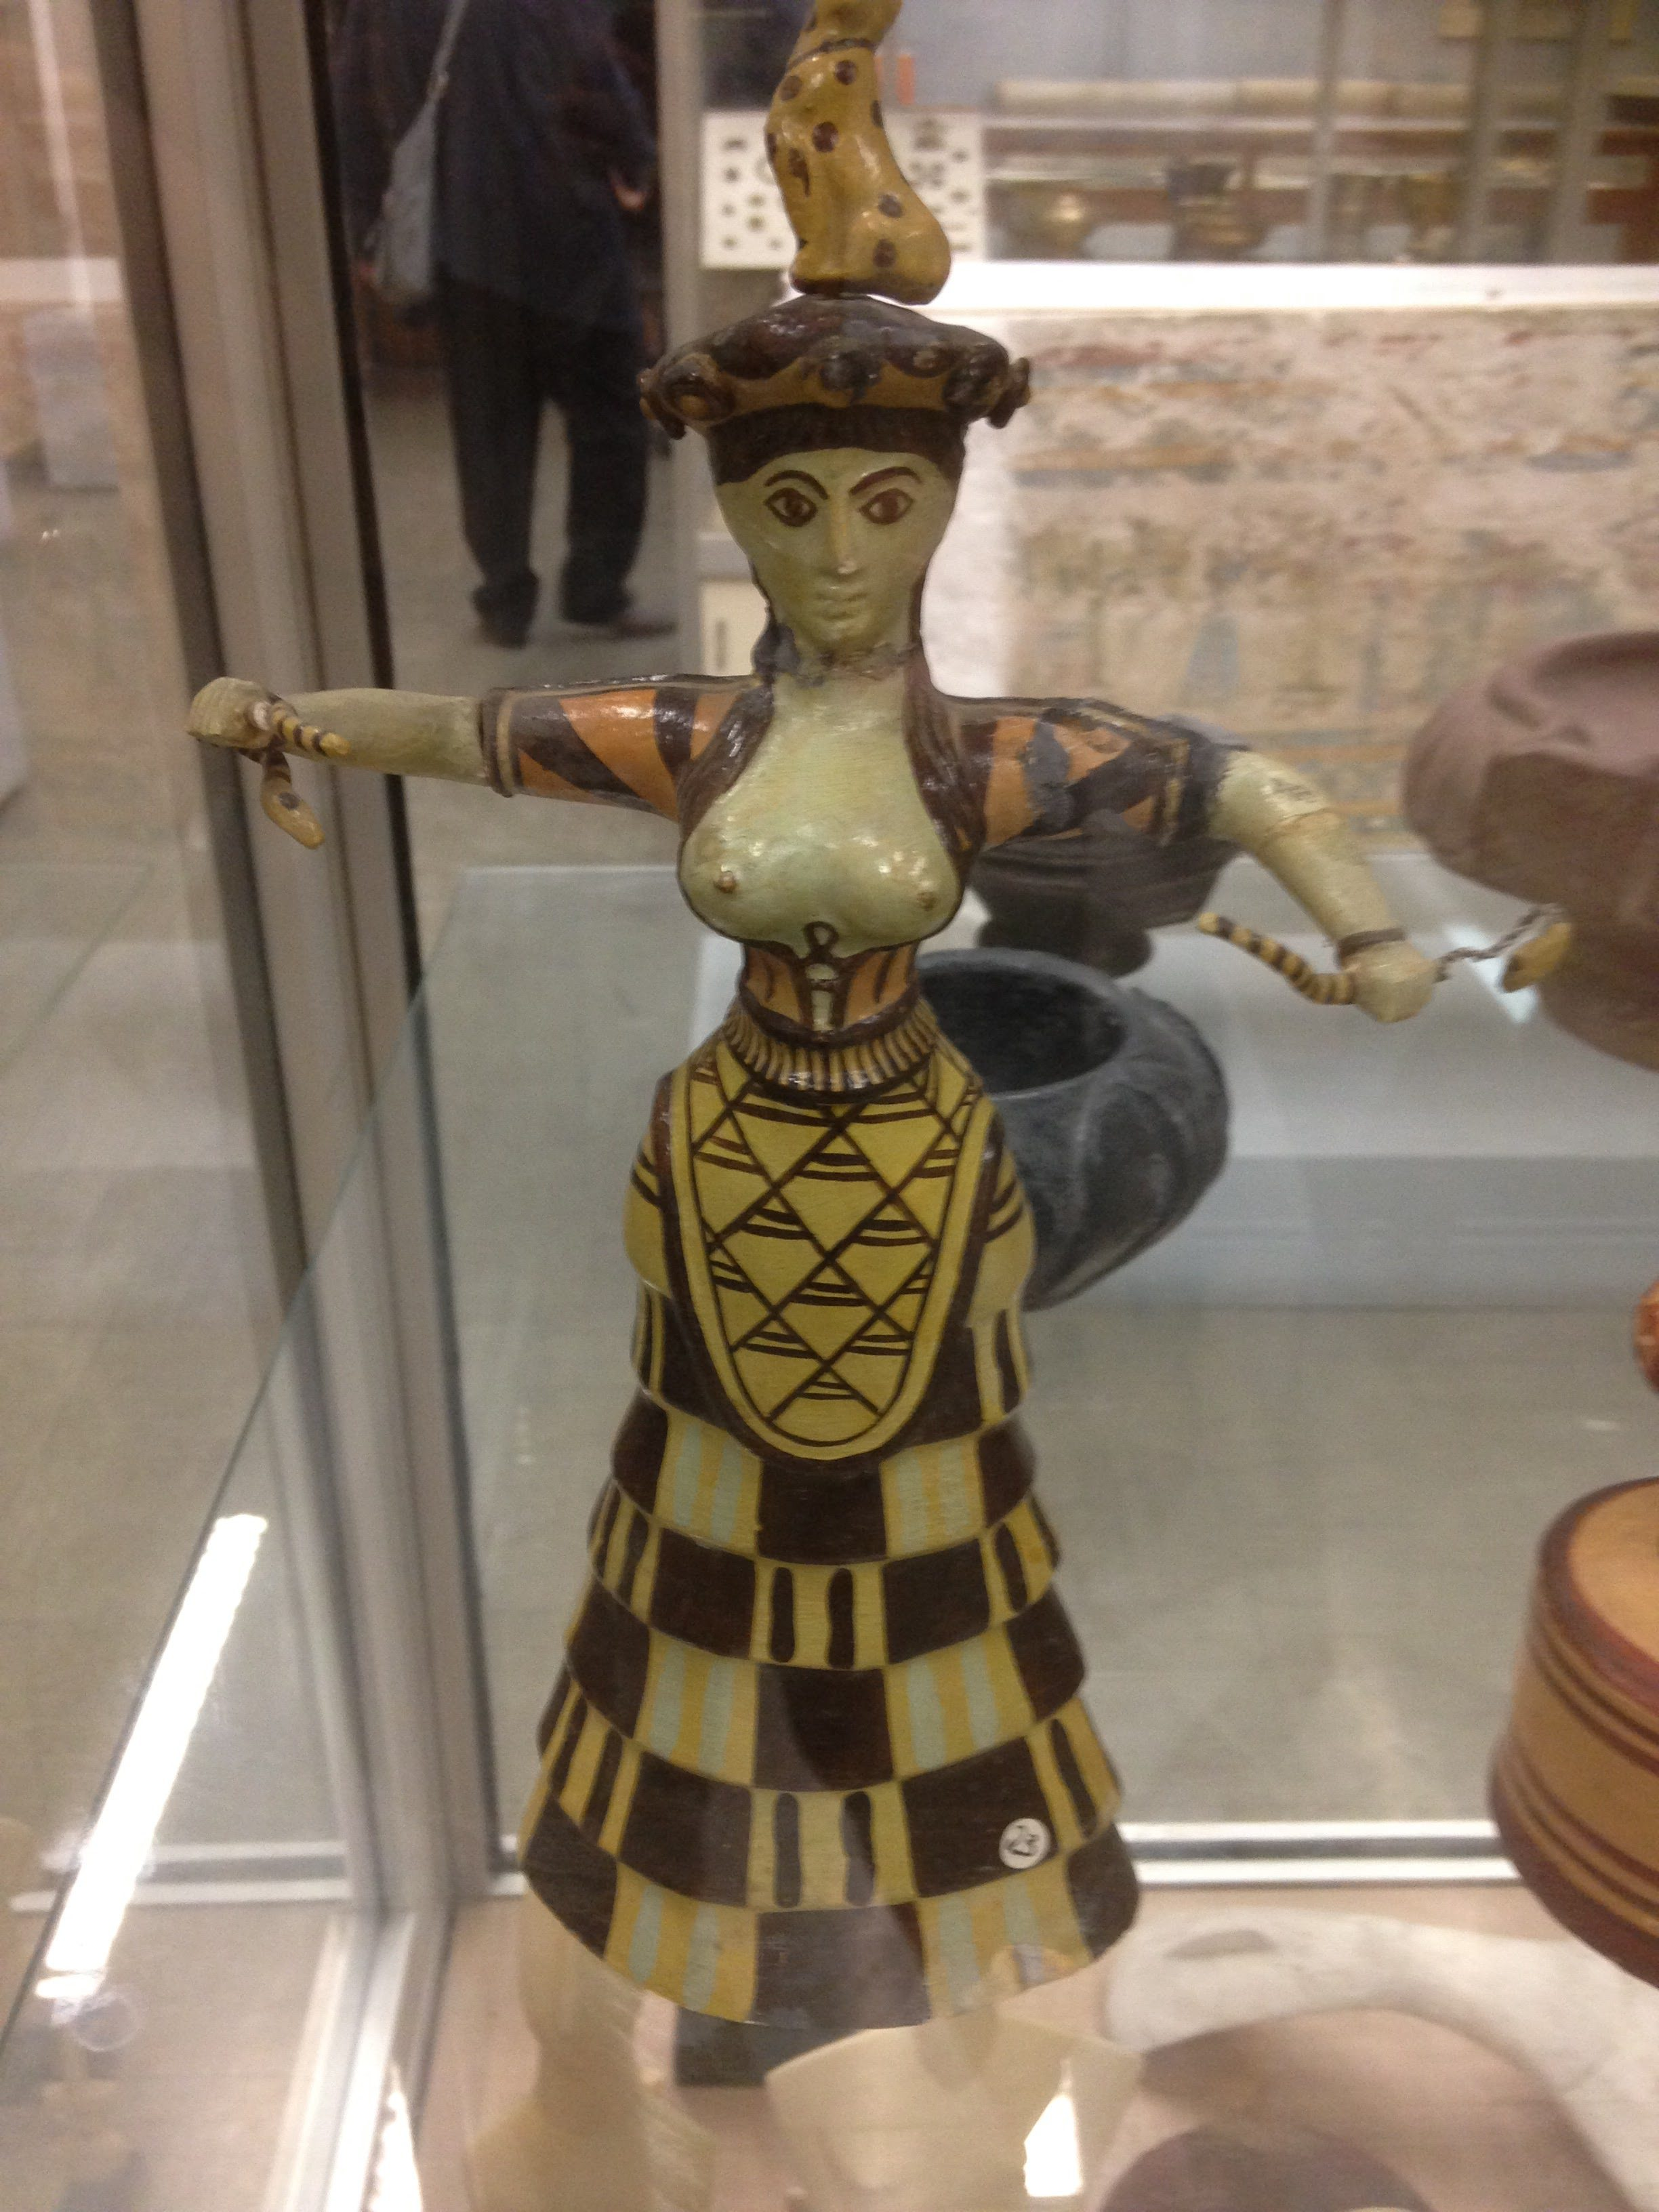 A great statuette of Athena from the teaching archives of the Anthropology Department in the Aristotle University of Thessaloniki, Greece.